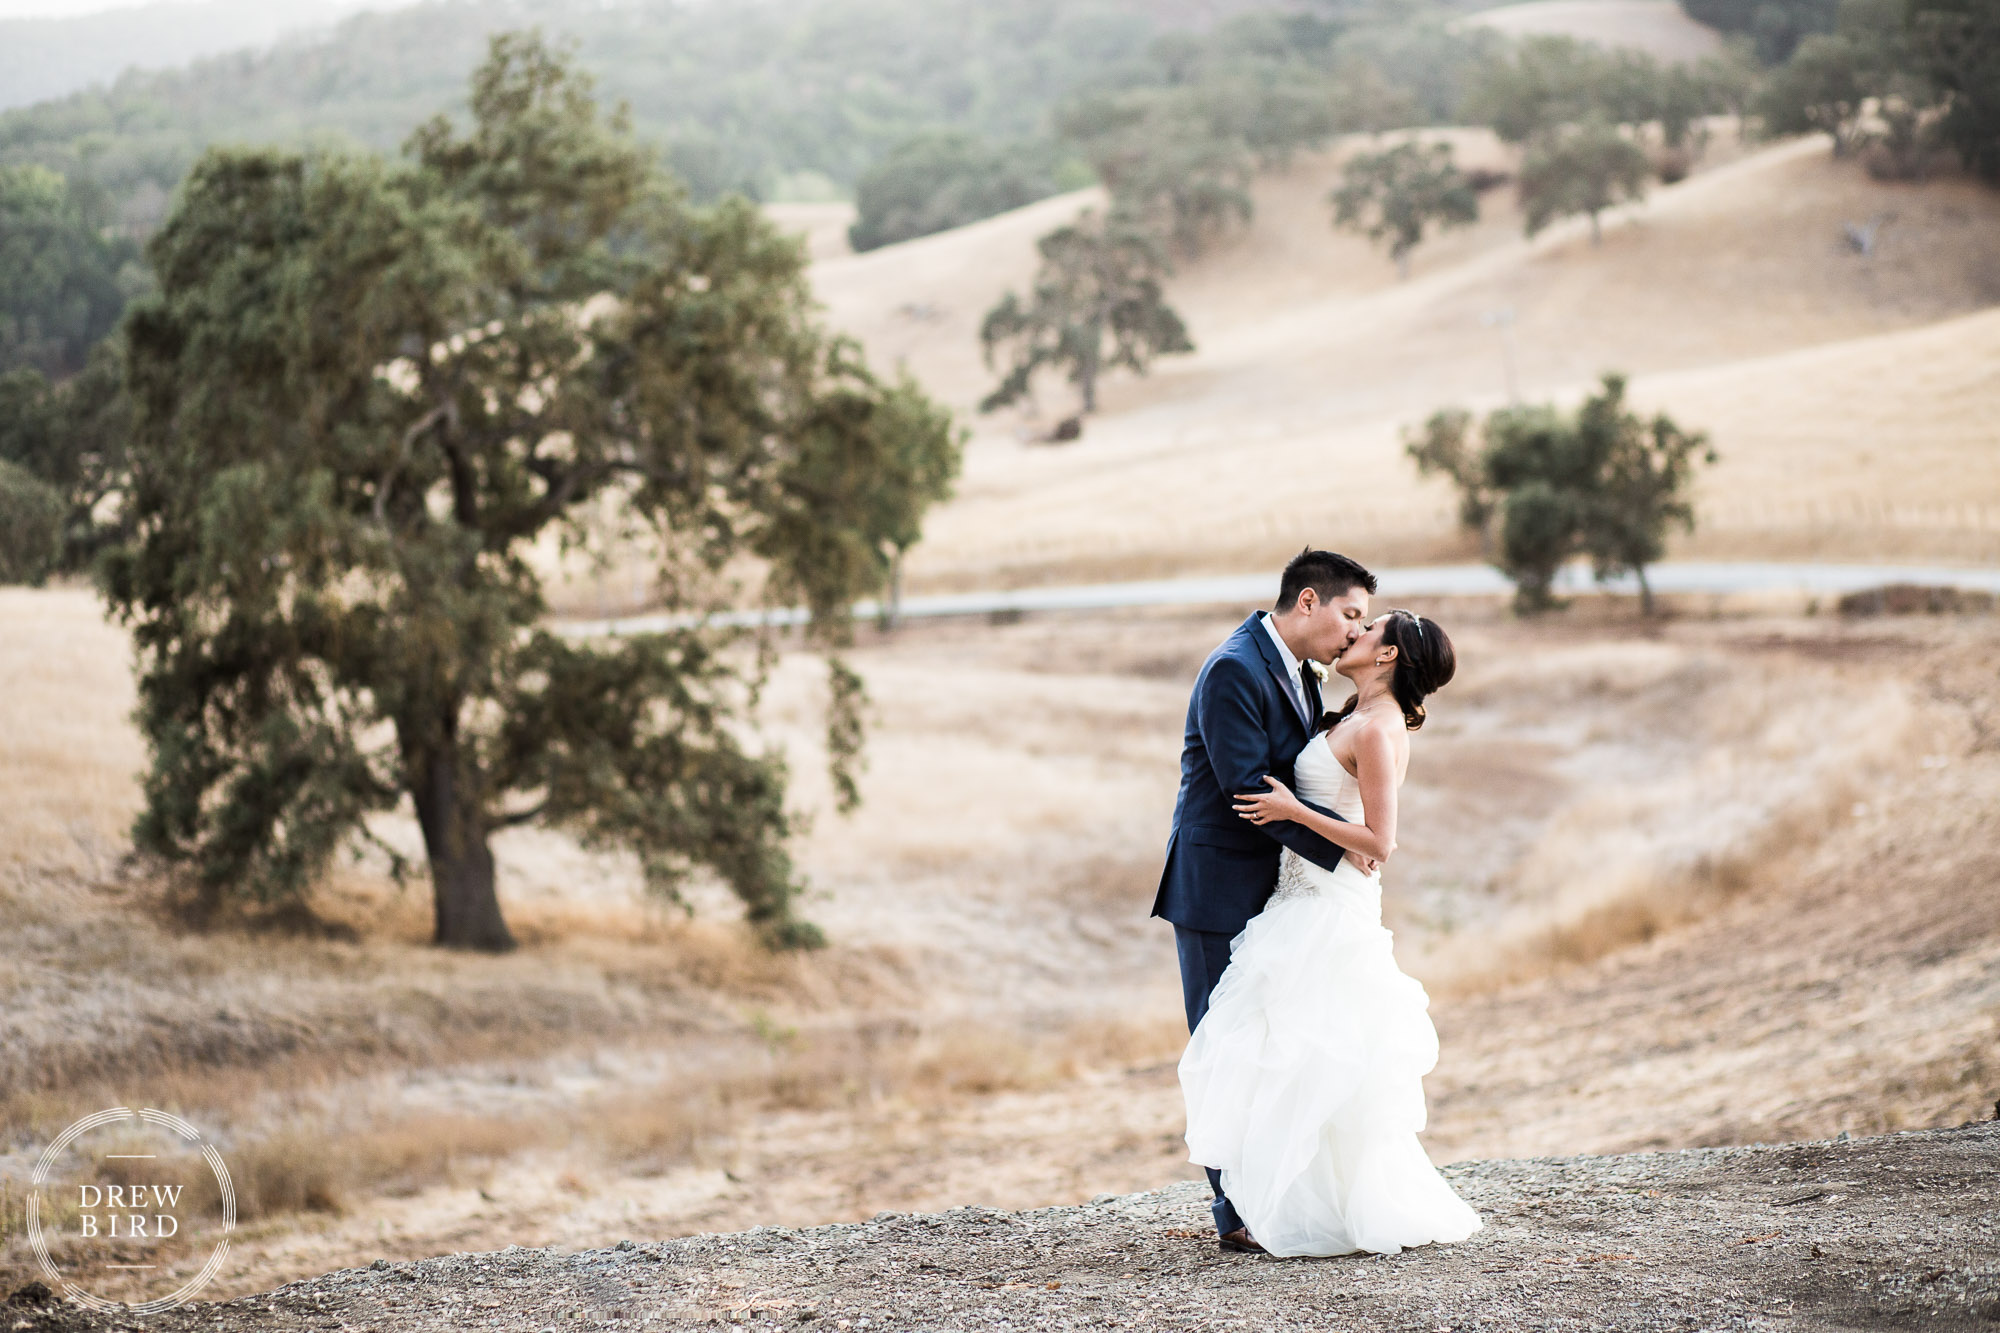 Wedding couple kissing in rolling california hills. Willow Heights Mansion wedding photographer Morgan Hill, California.